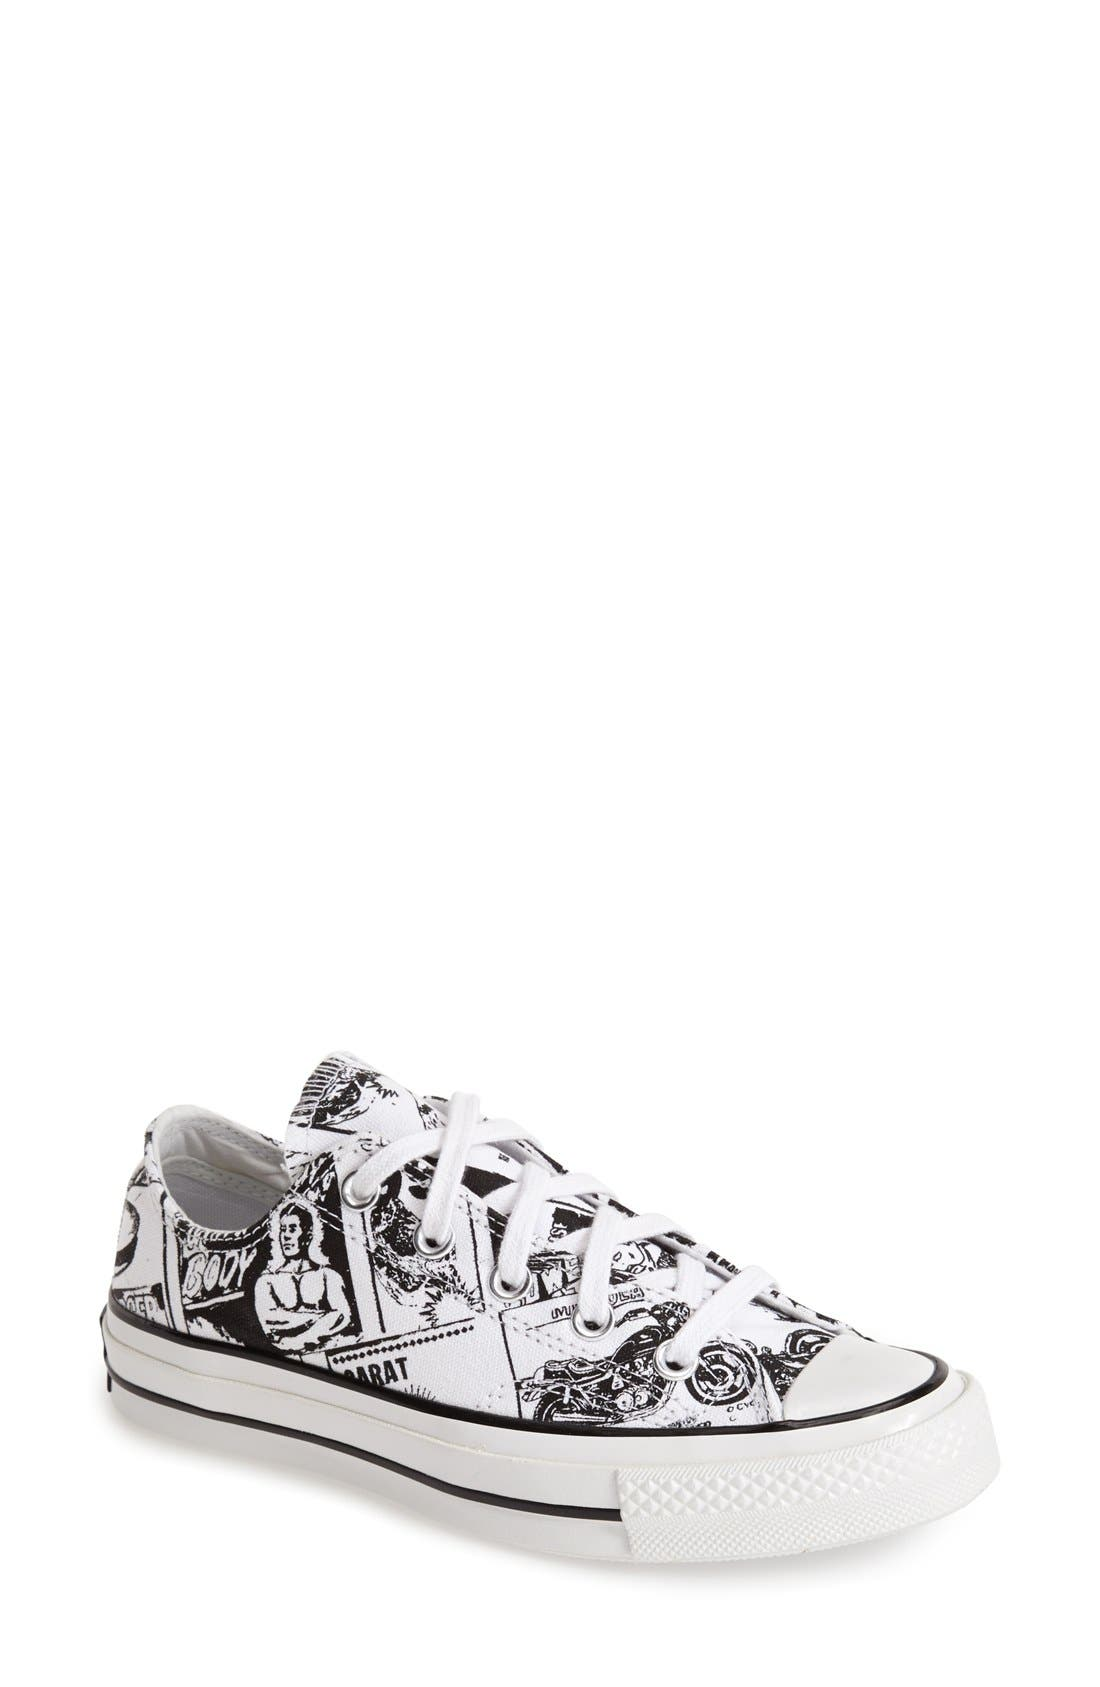 Main Image - Converse Chuck Taylor® All Star® '70 Andy Warhol Collection Sneaker (Women)